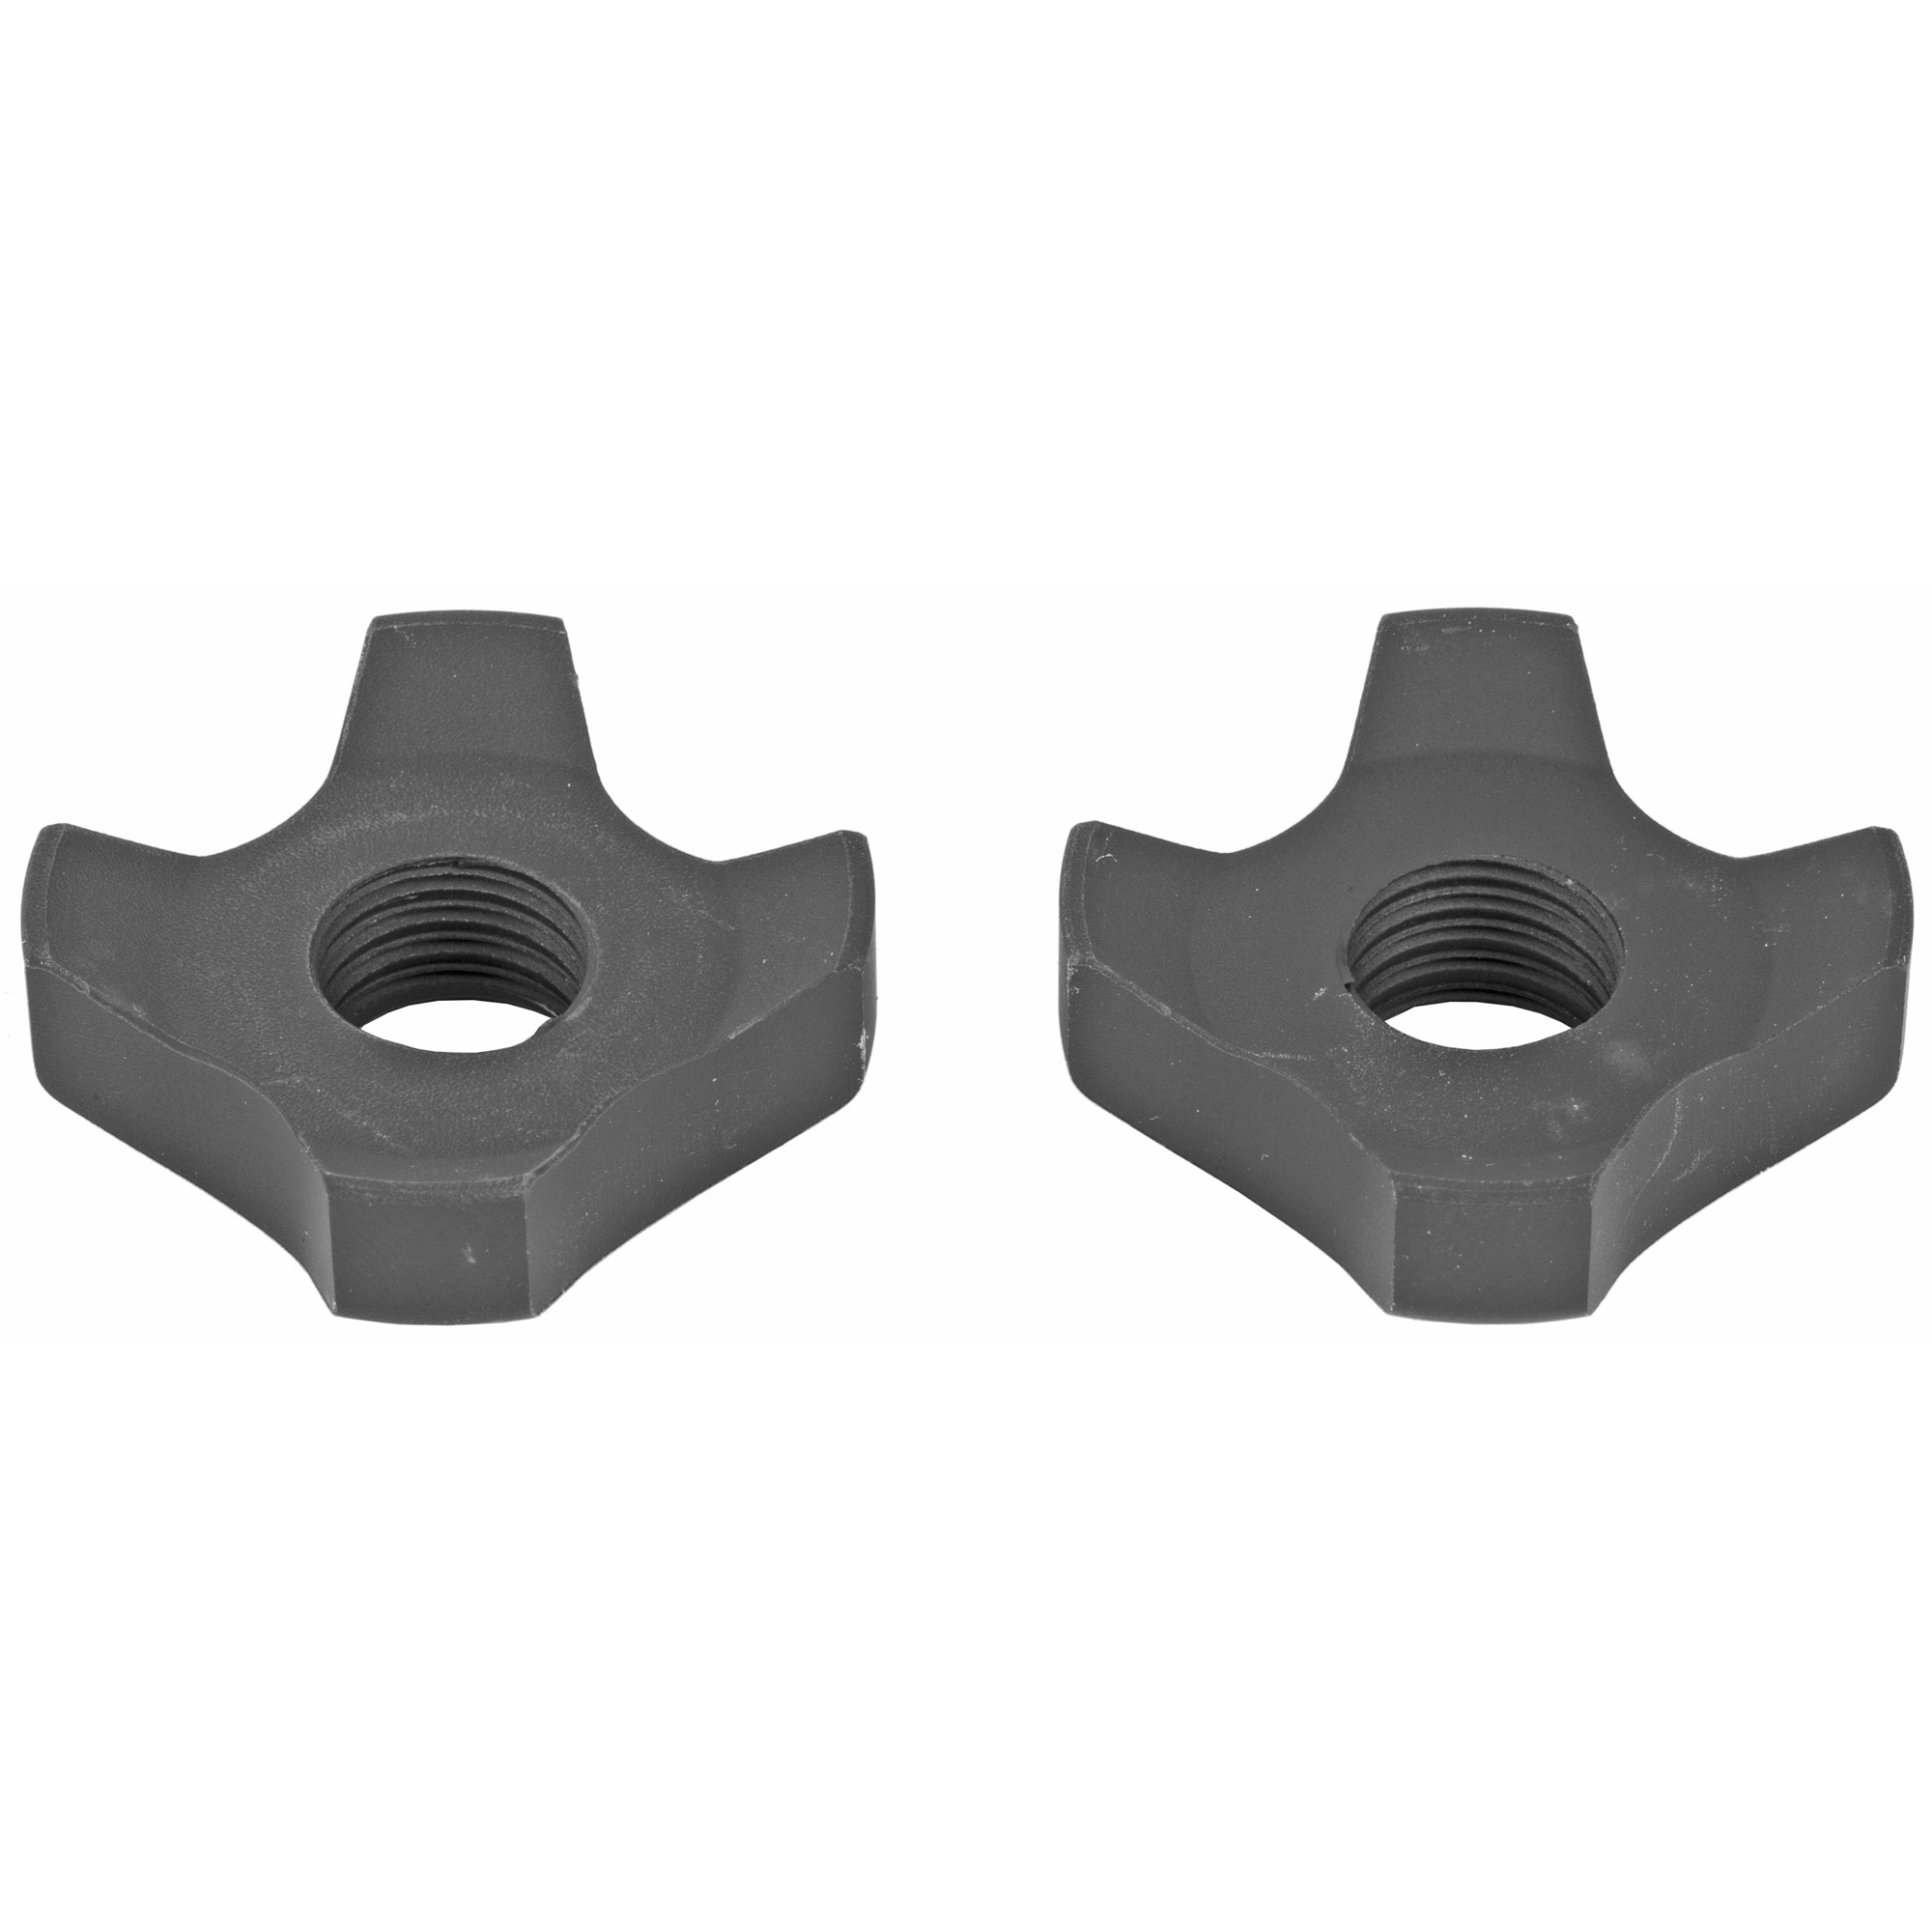 Accu-tac Spike Claws Set